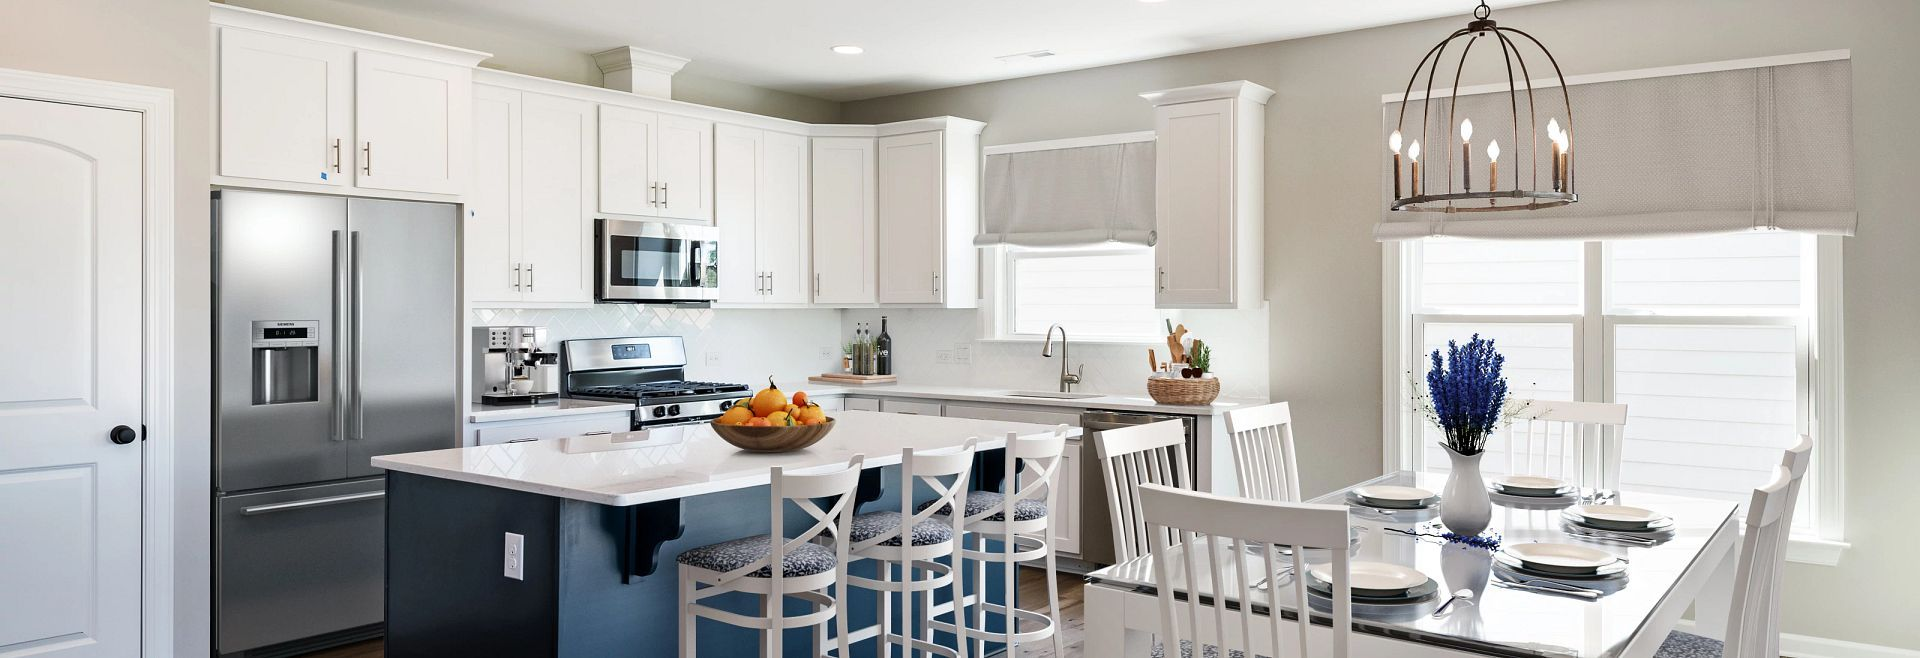 Kitchen featured in the Salina By Shea Homes in Charlotte, NC